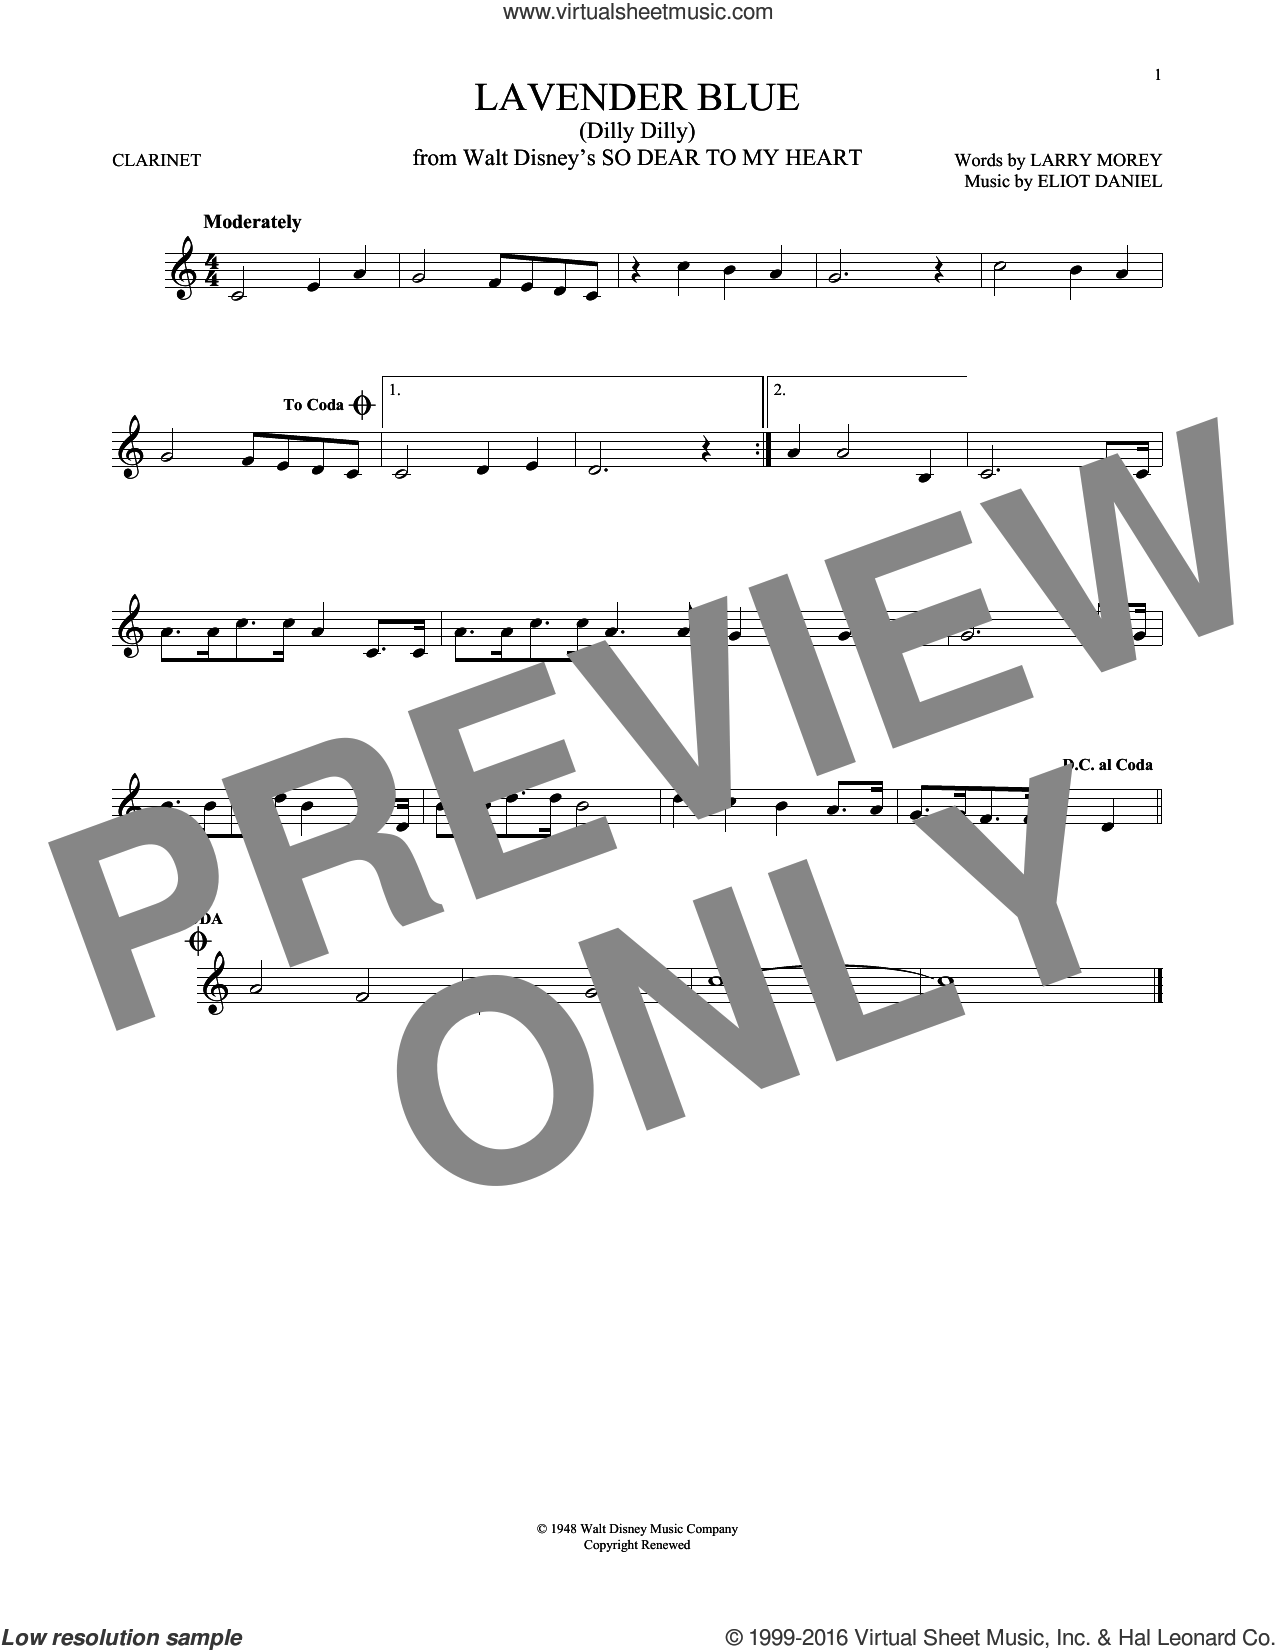 Lavender Blue (Dilly Dilly) sheet music for clarinet solo by Sammy Turner, Eliot Daniel and Larry Morey, intermediate skill level